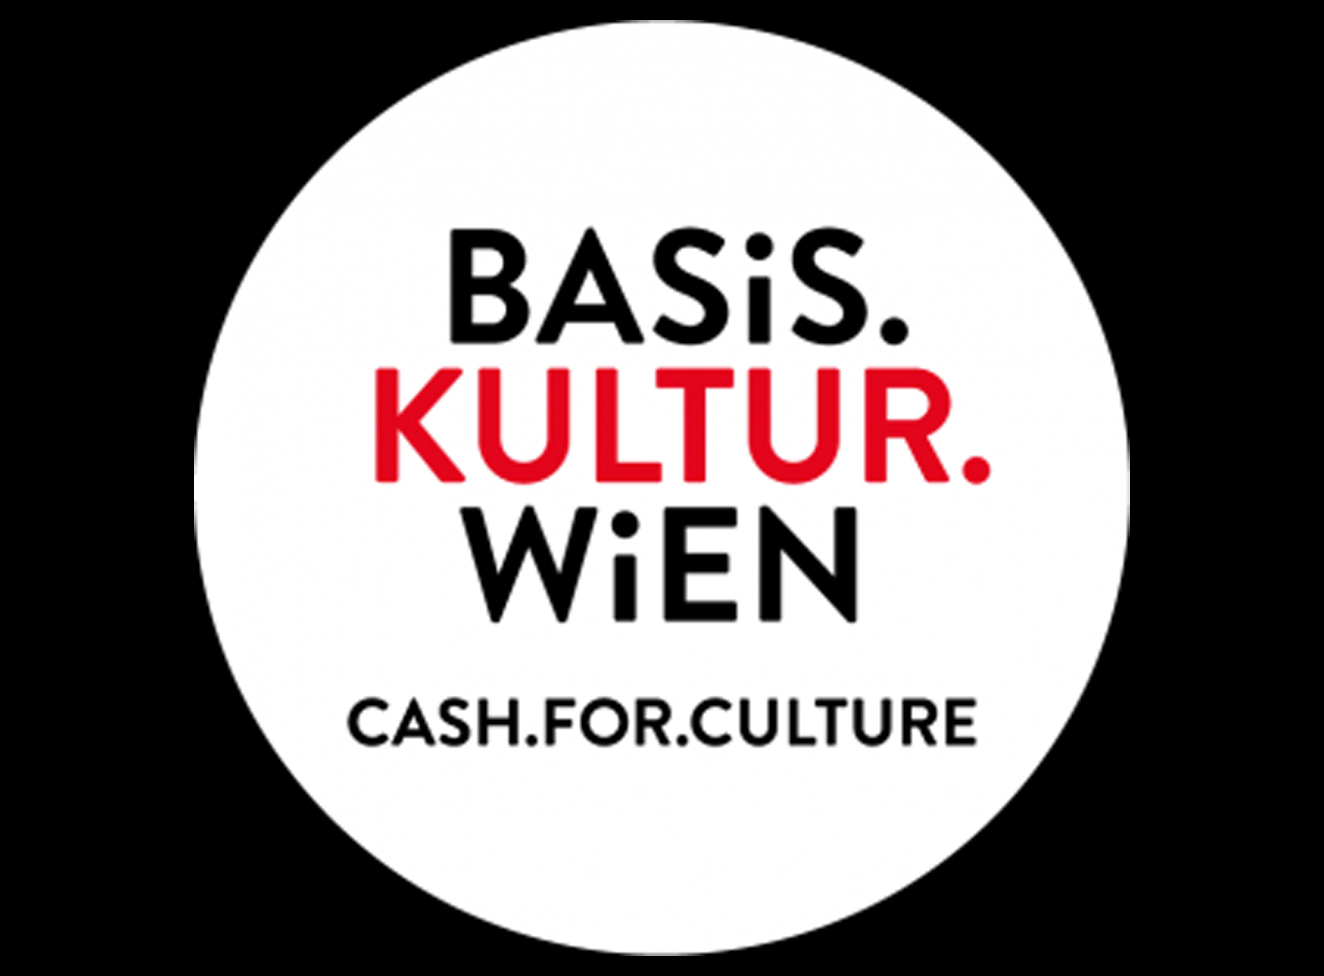 CASH.FOR.CULTURE (W)